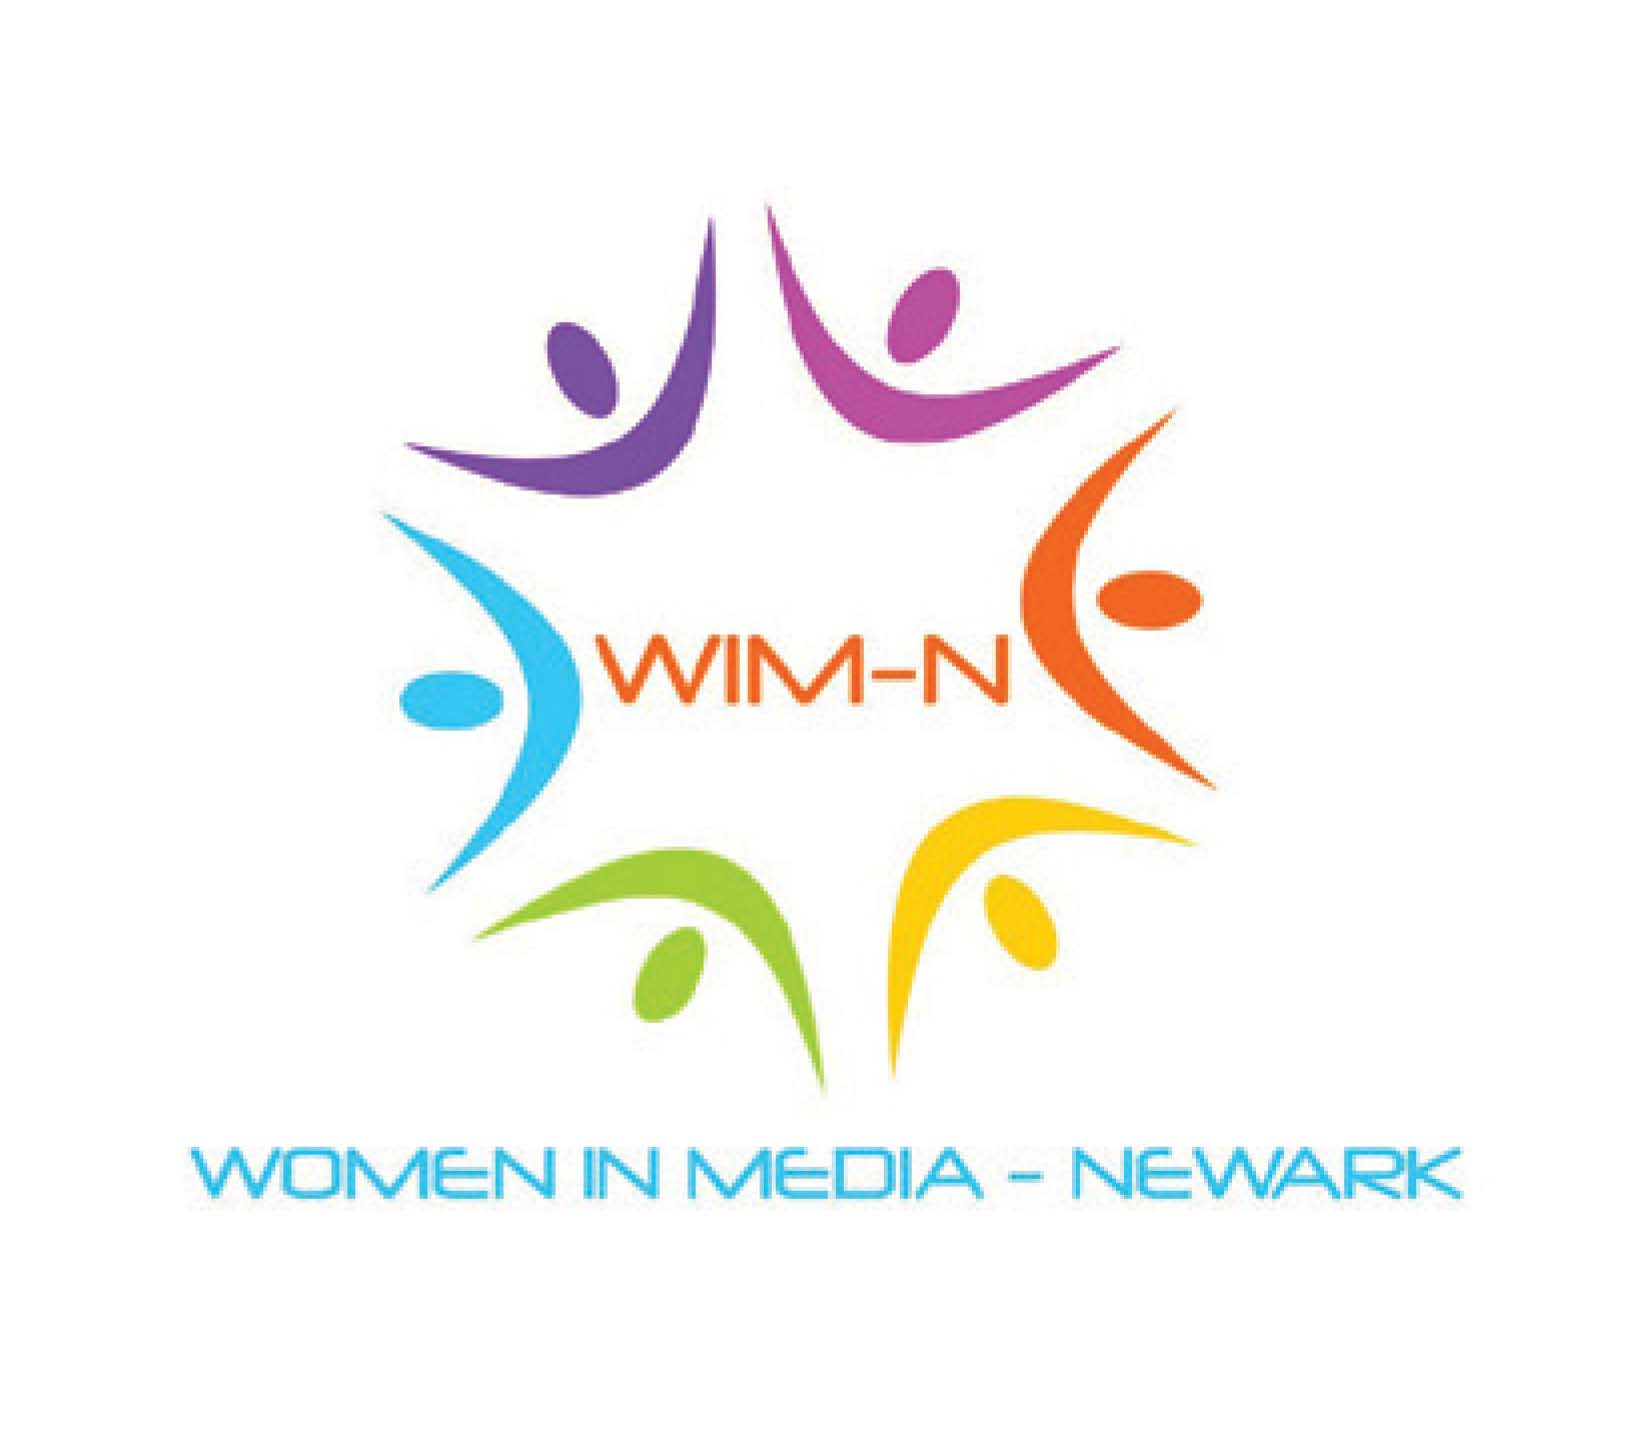 Women in Media - Newark logo